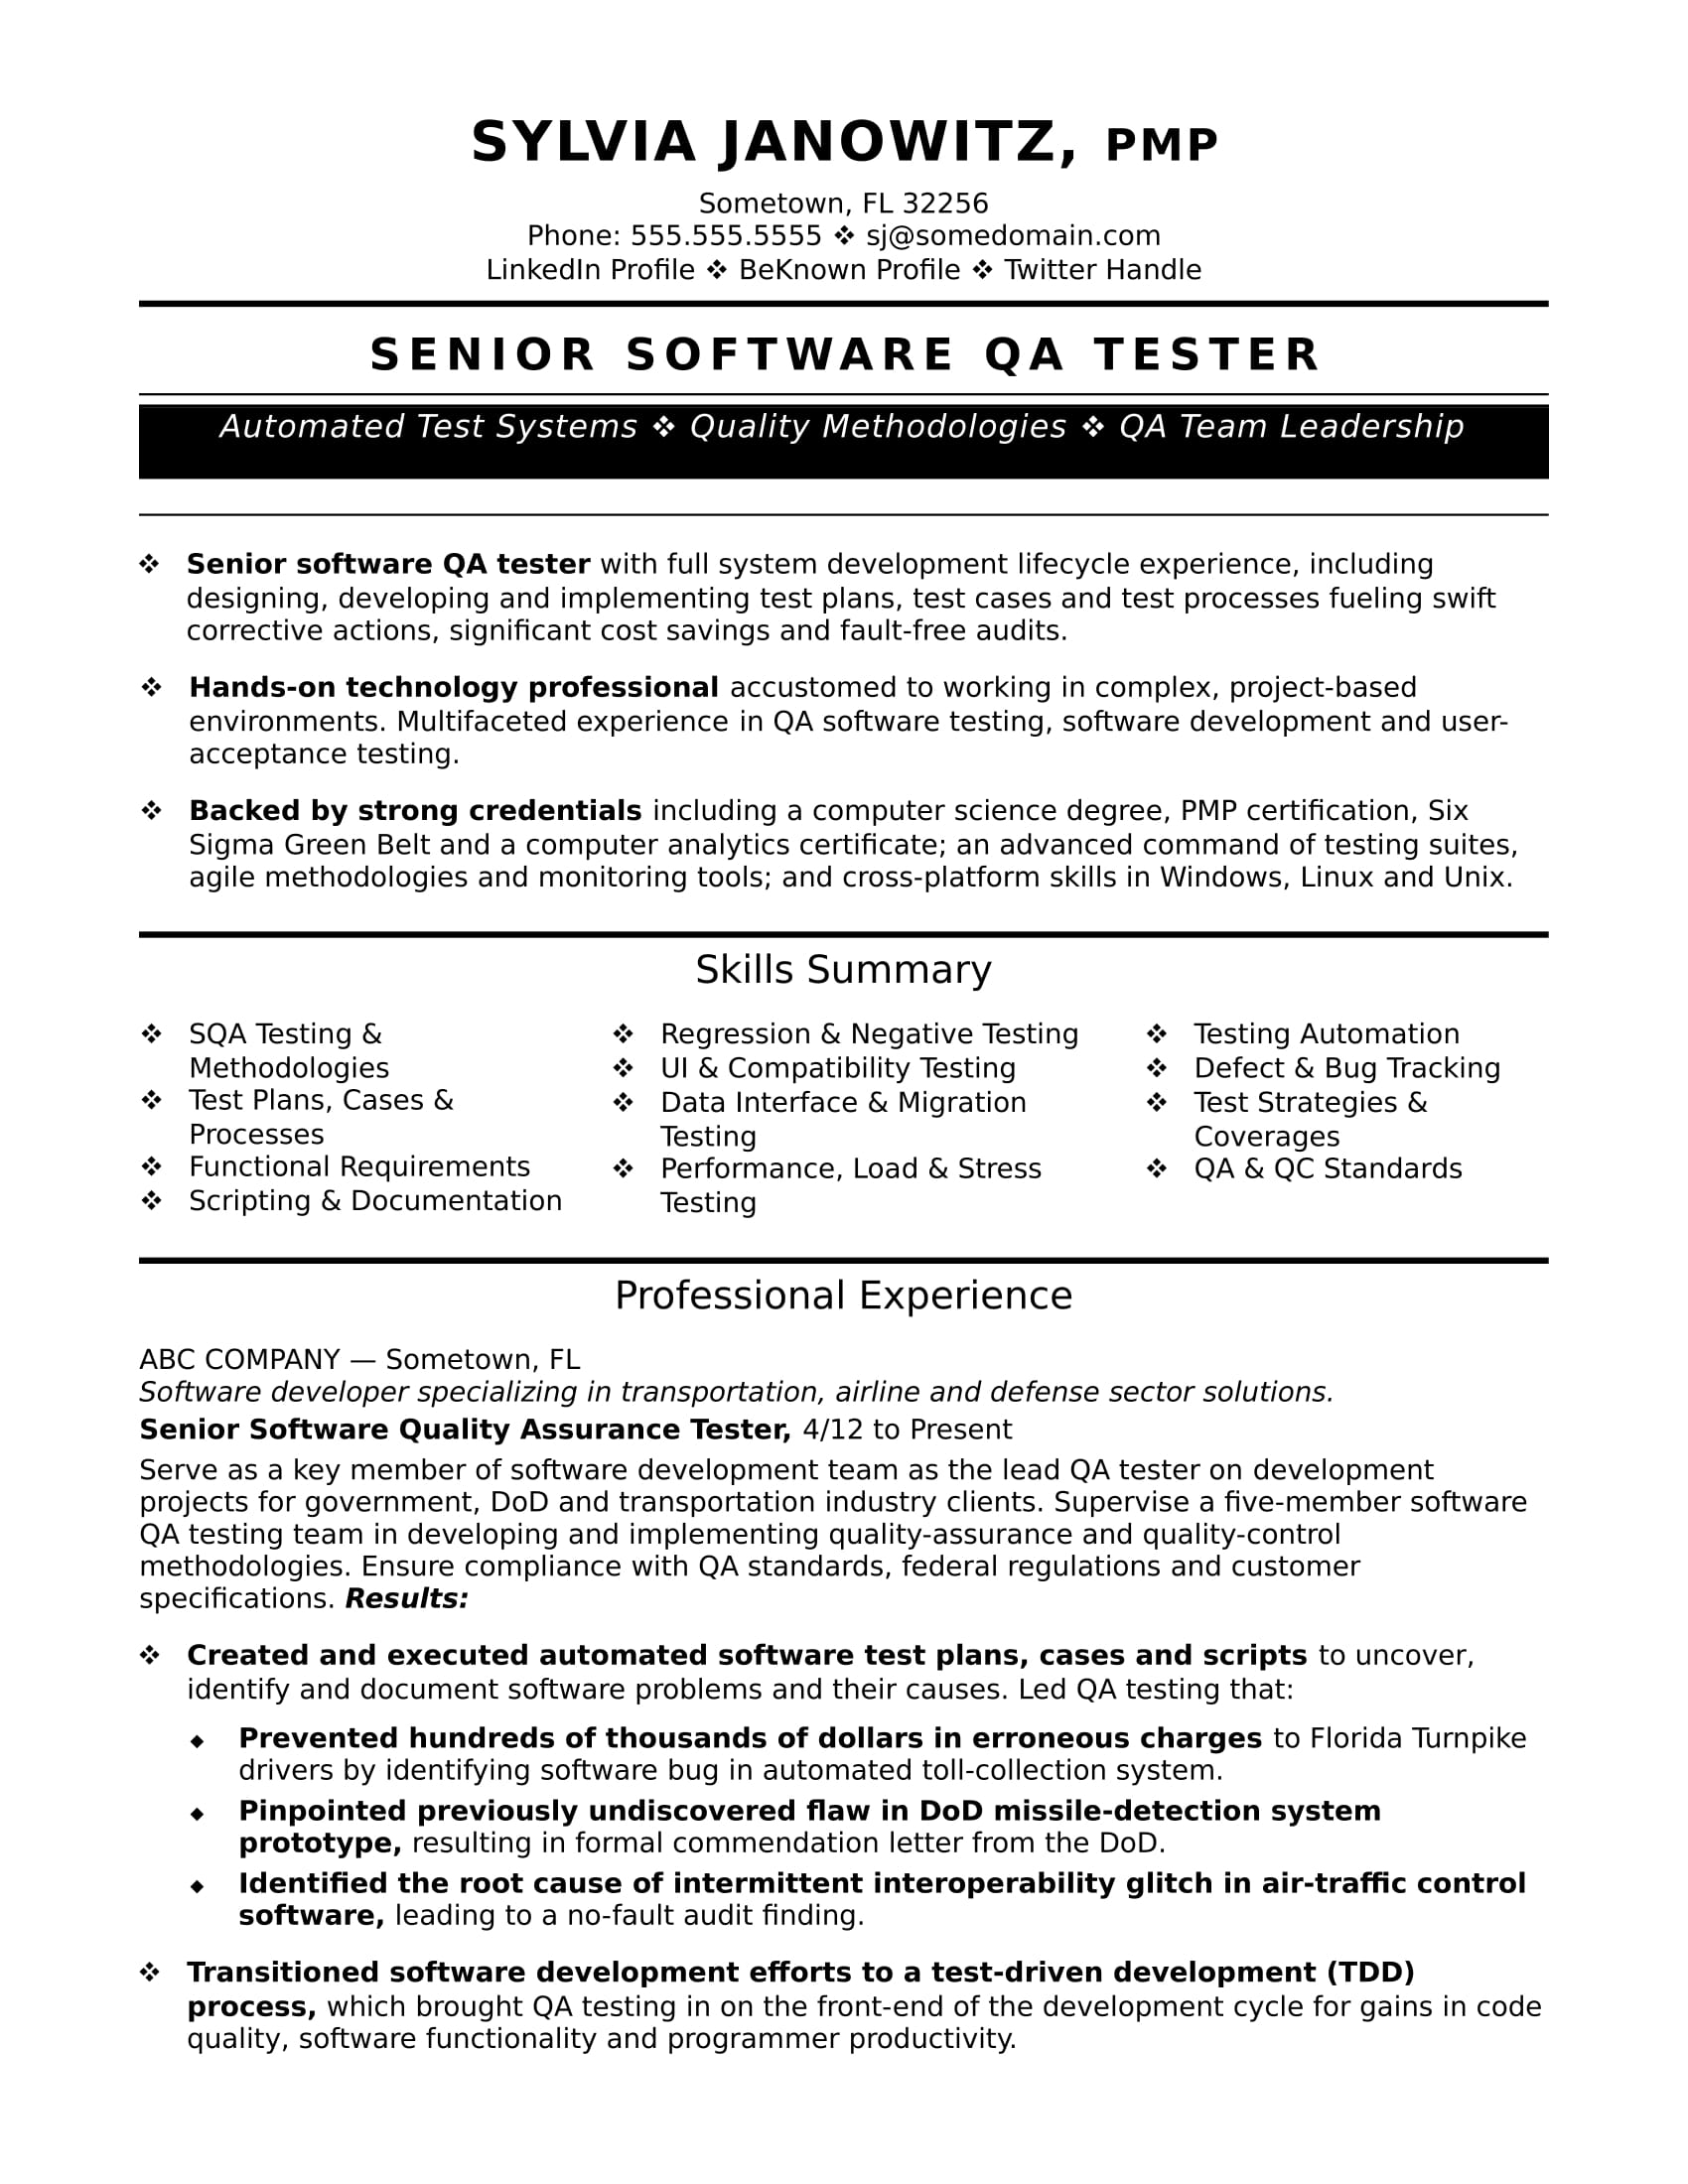 Exceptional Experienced QA Software Tester Resume Sample